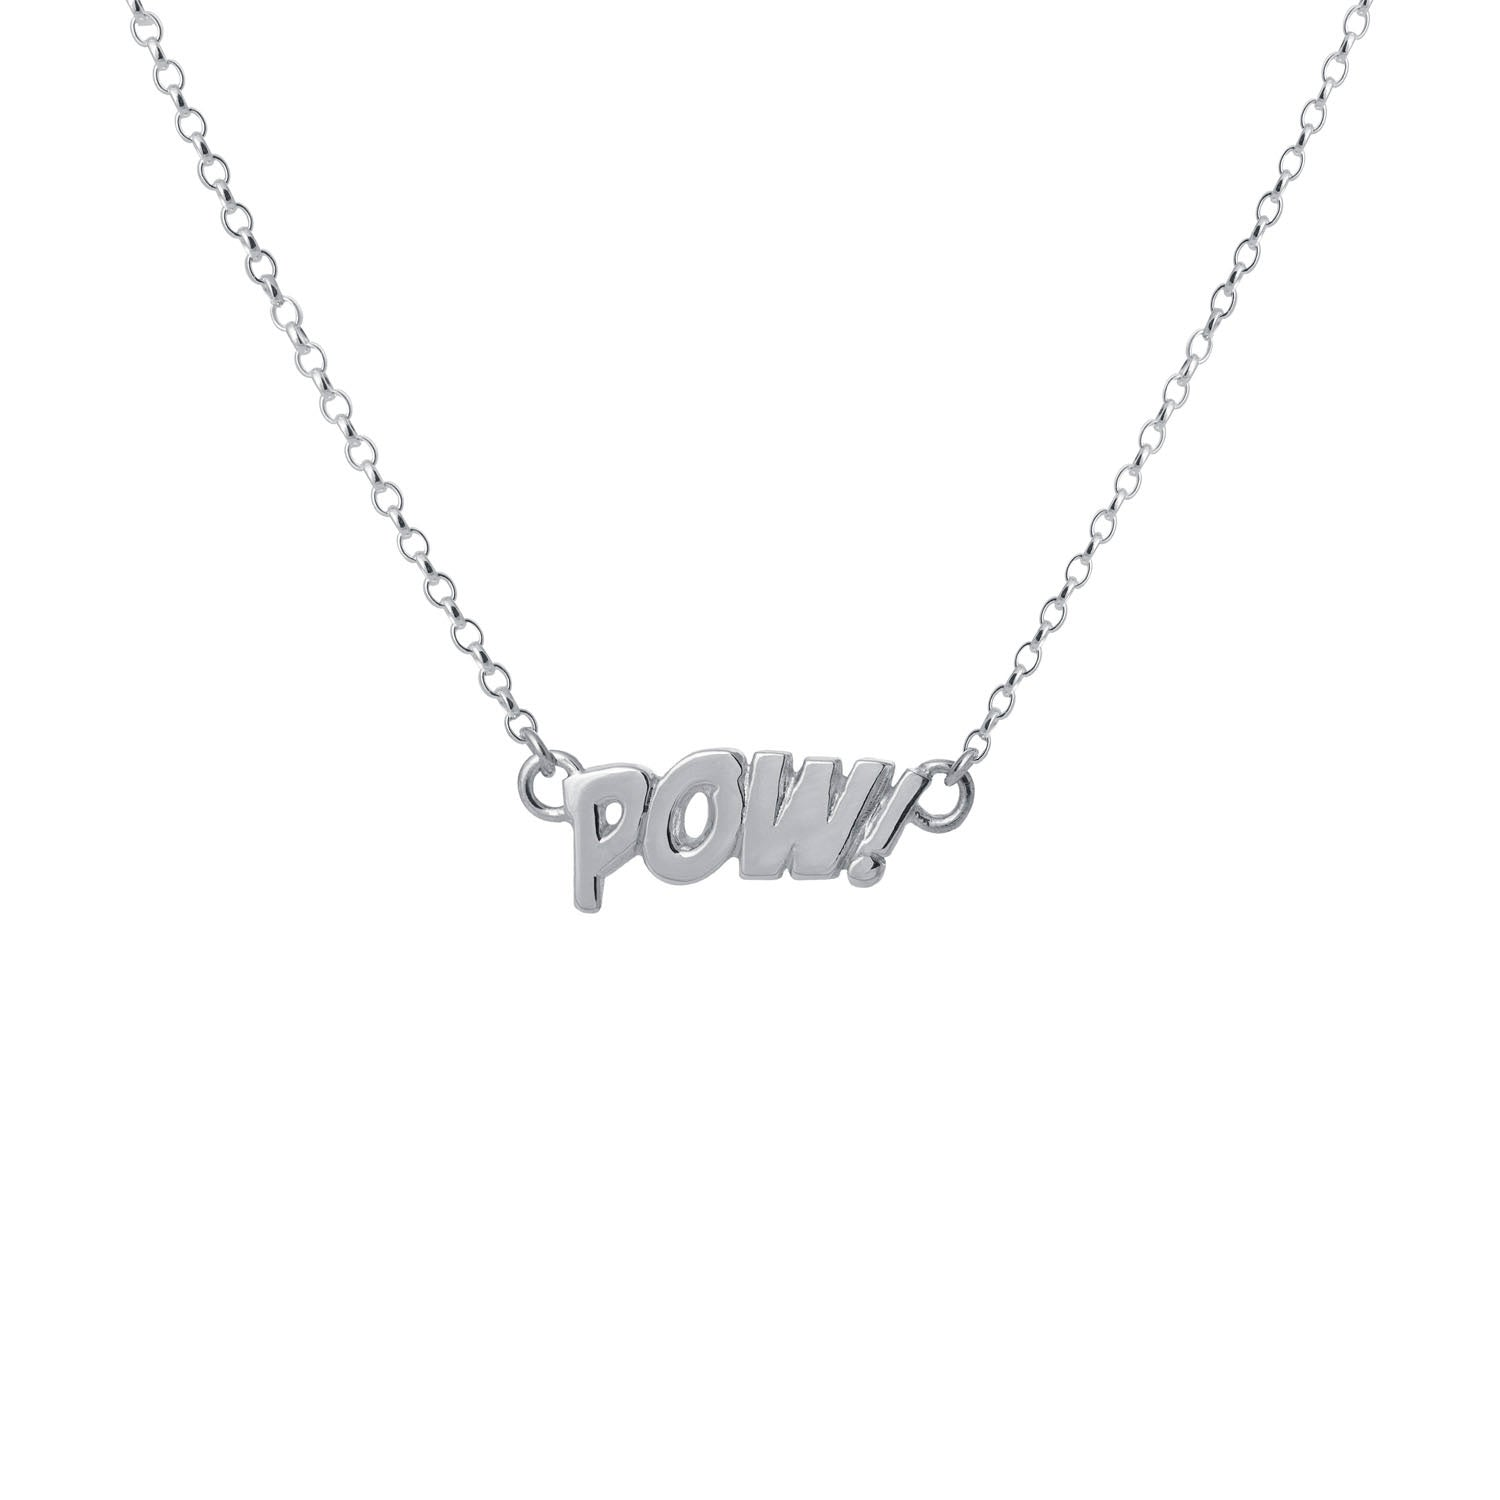 Edge Only POW! Letters Necklace Small in sterling silver